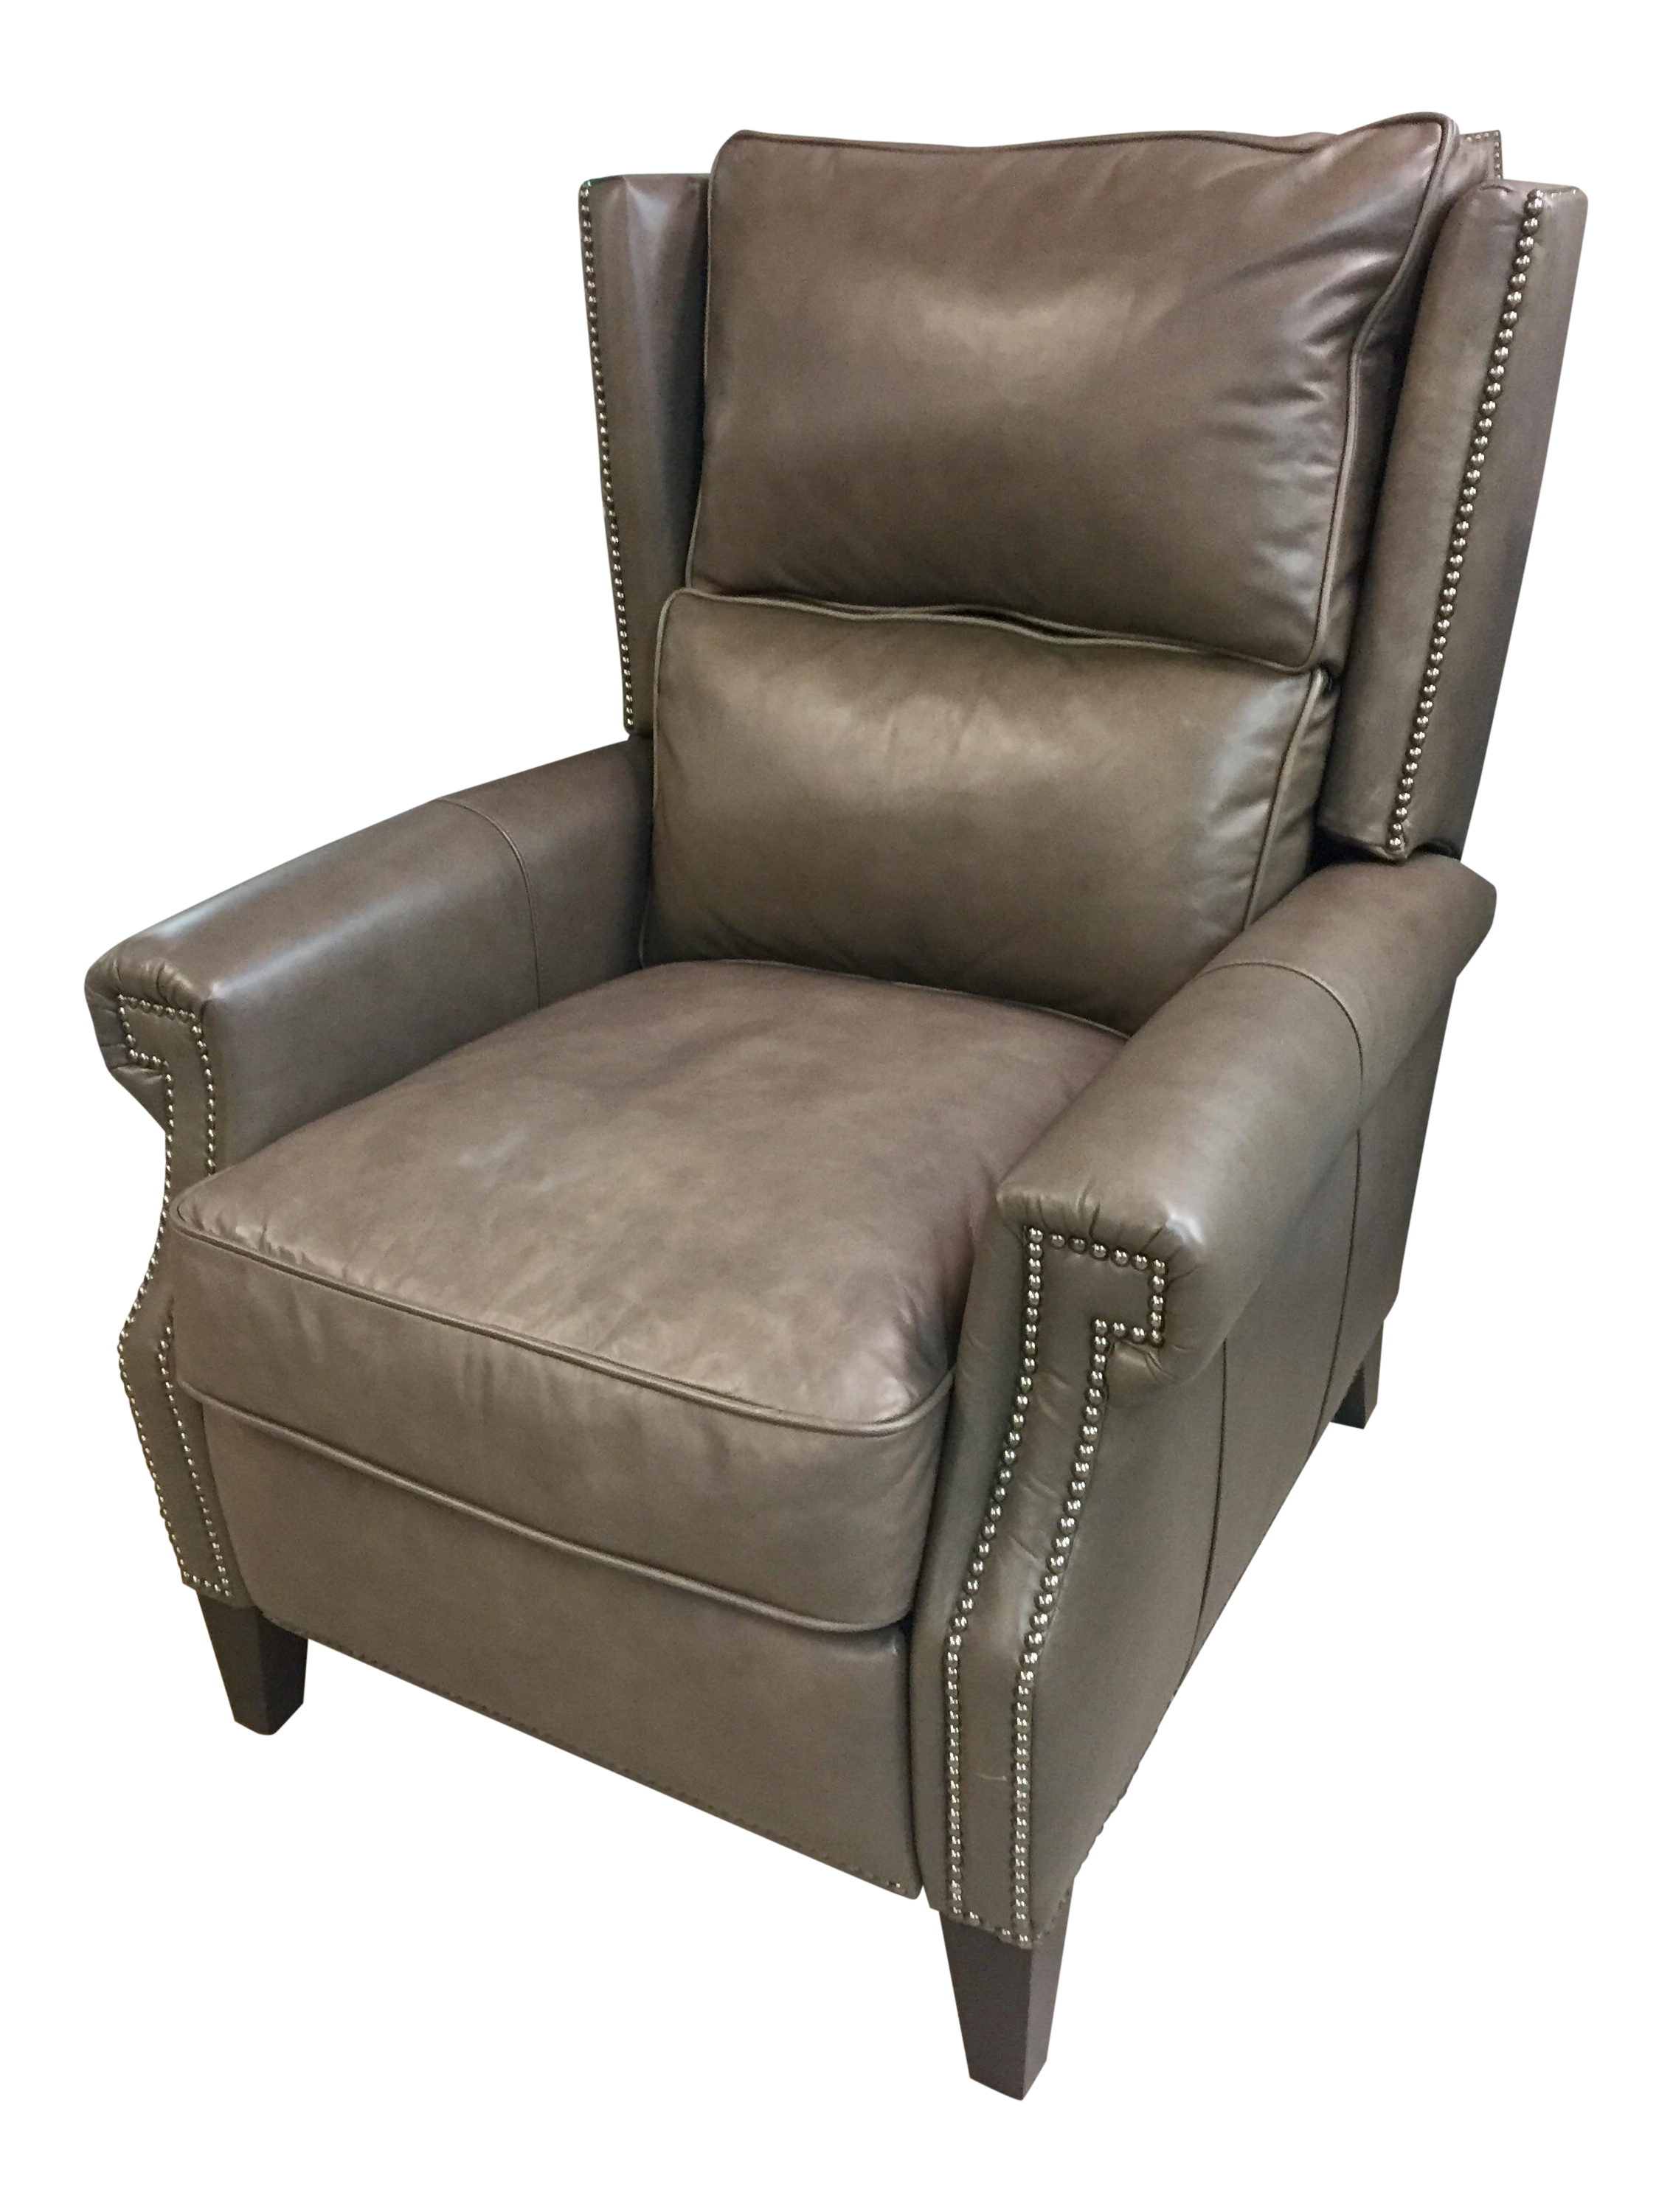 Magnificent Modern Henredon Leather Company Recliner Chair Ibusinesslaw Wood Chair Design Ideas Ibusinesslaworg